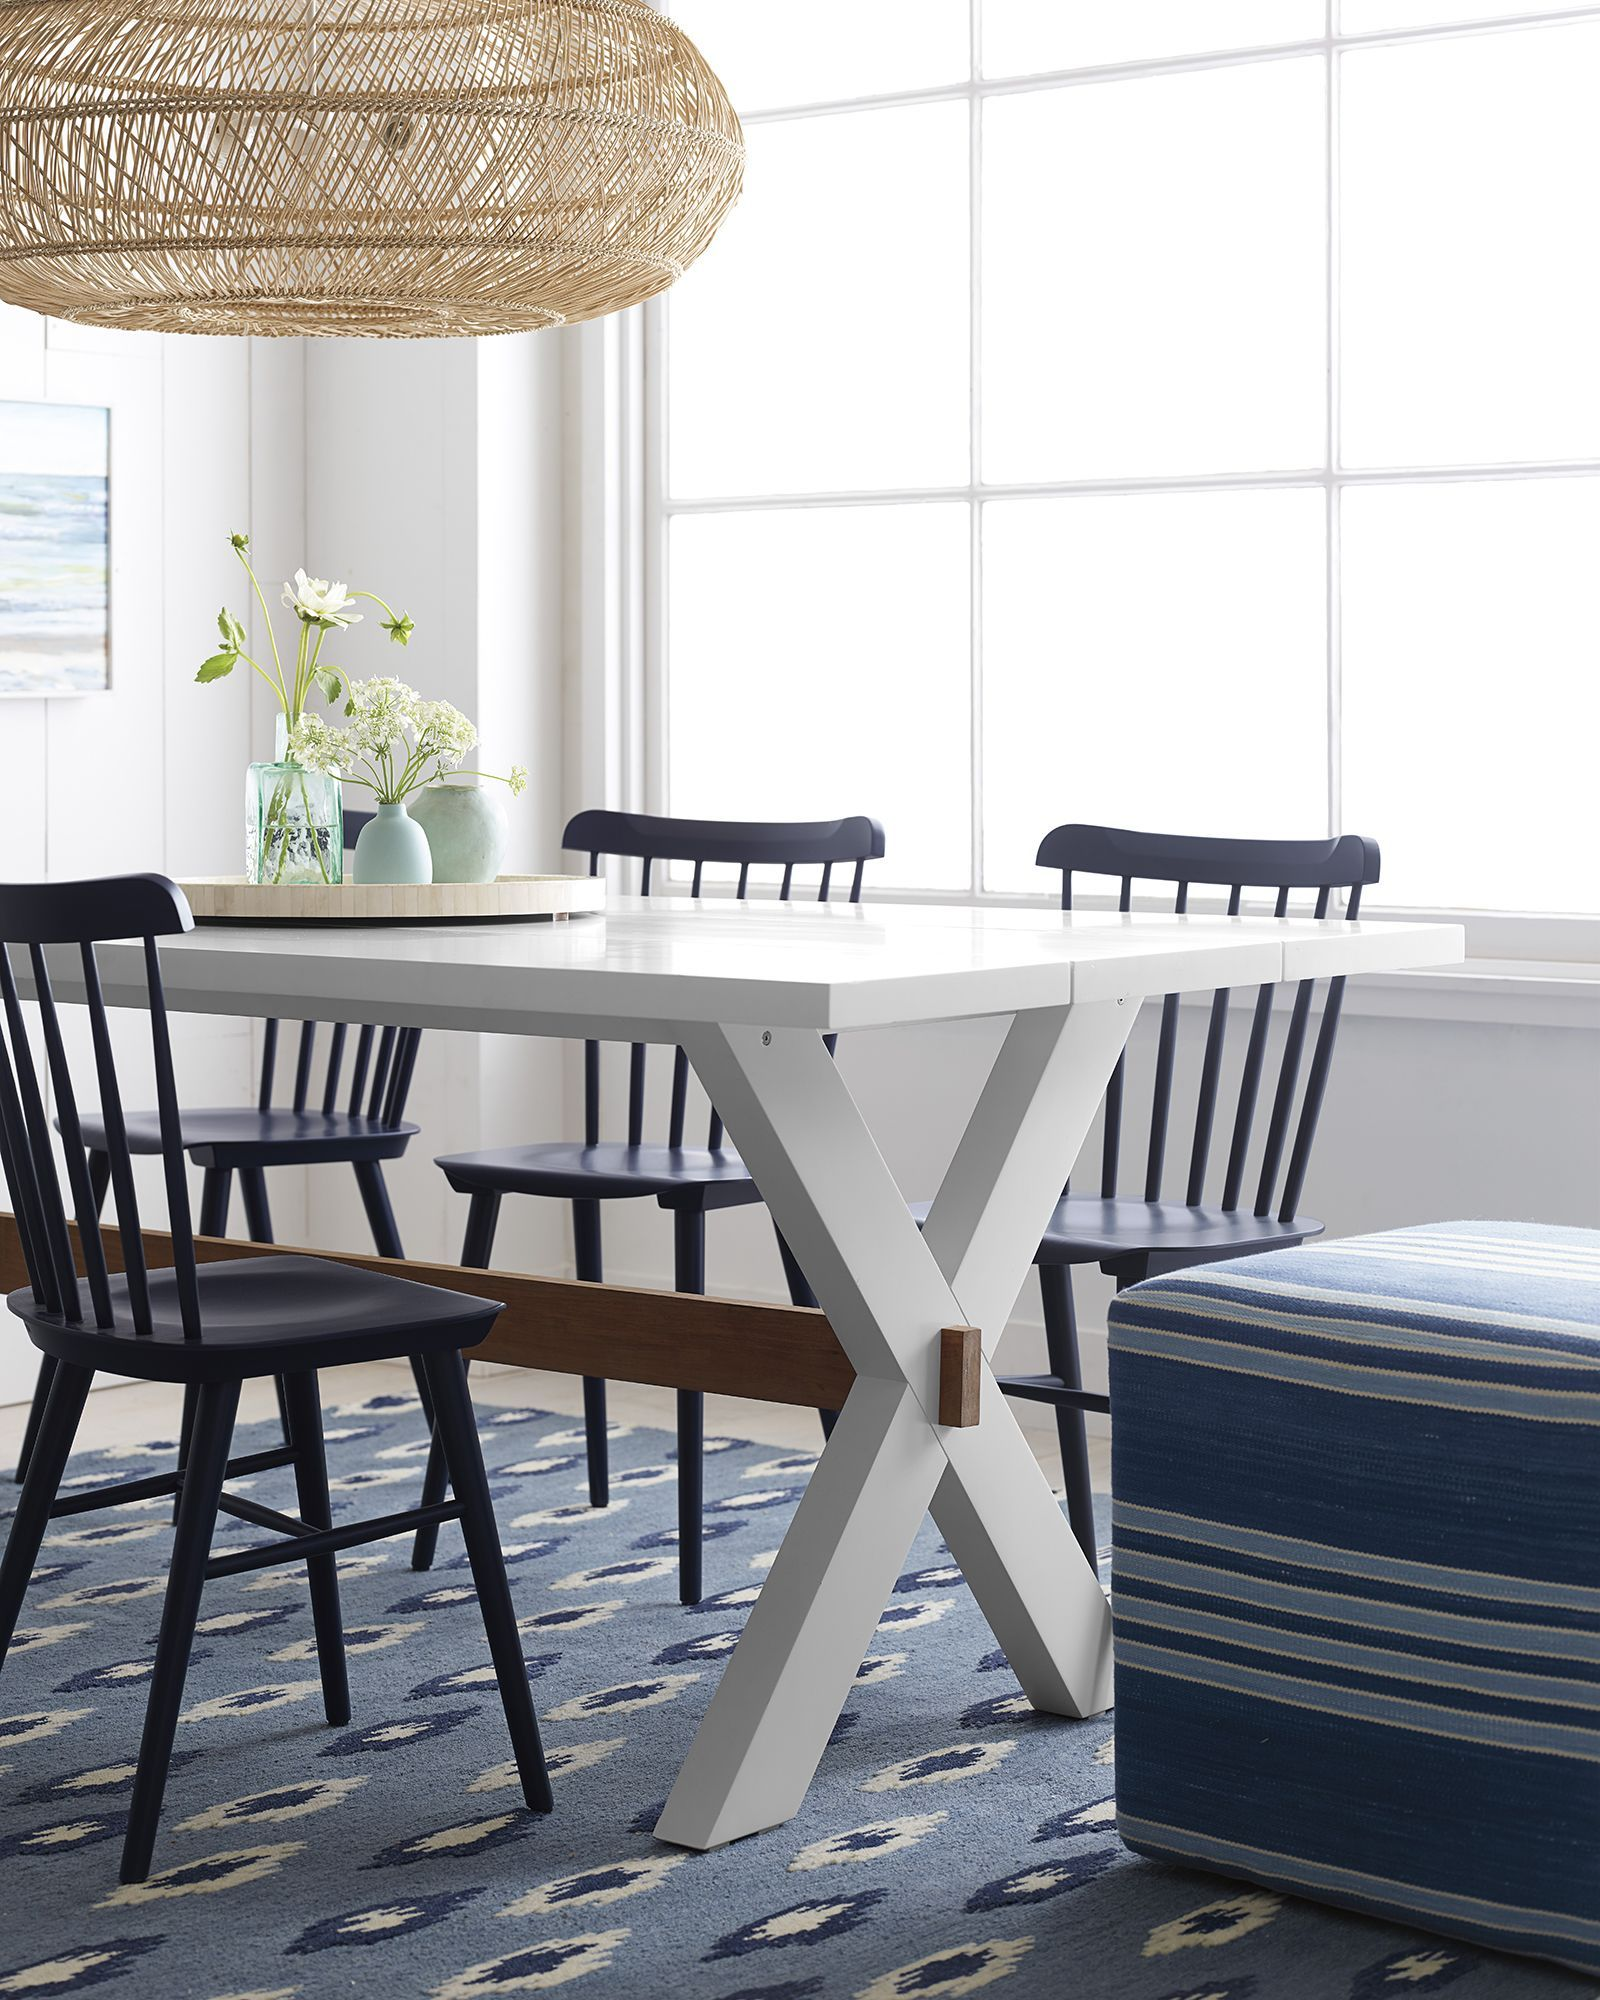 11 Fetching Country Coastal Decor Ideas Dining Room Blue Swivel Dining Chairs Dining Room Design